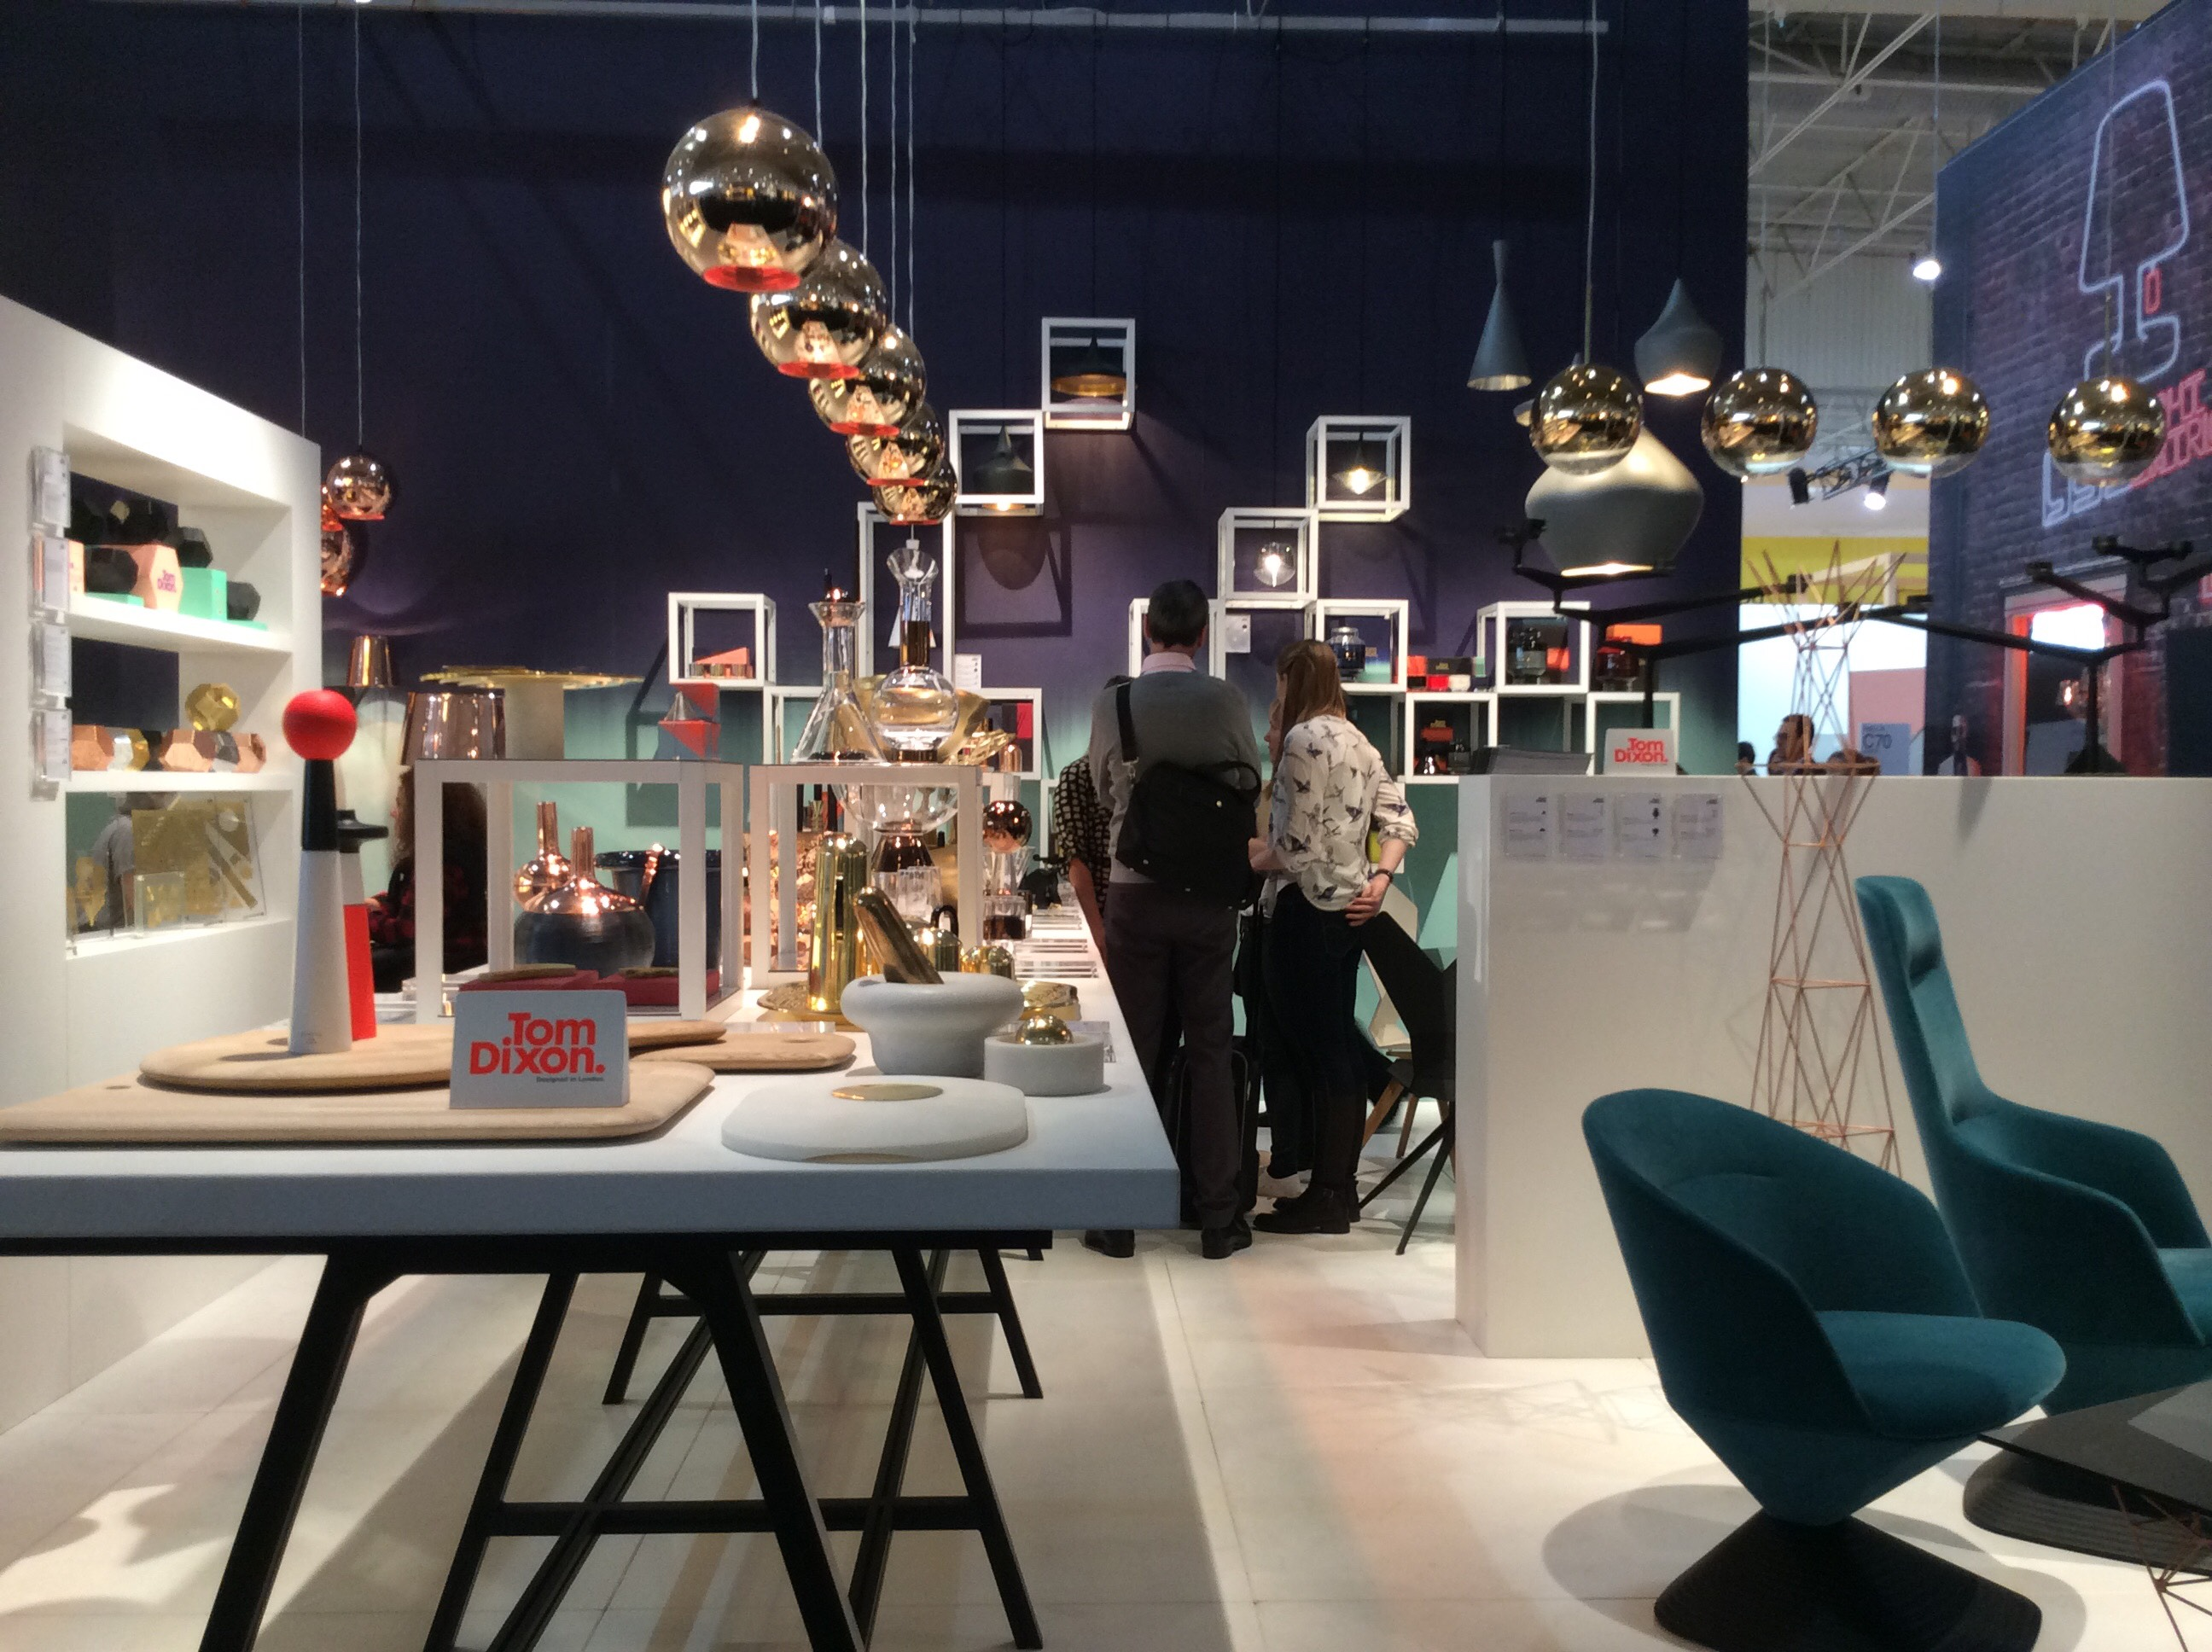 Why You Should Attend Maison Et Objet Paris This January 5 maison et objet paris Why You Should Attend Maison Et Objet Paris This January Why You Should Attend Maison Et Objet Paris This January 5